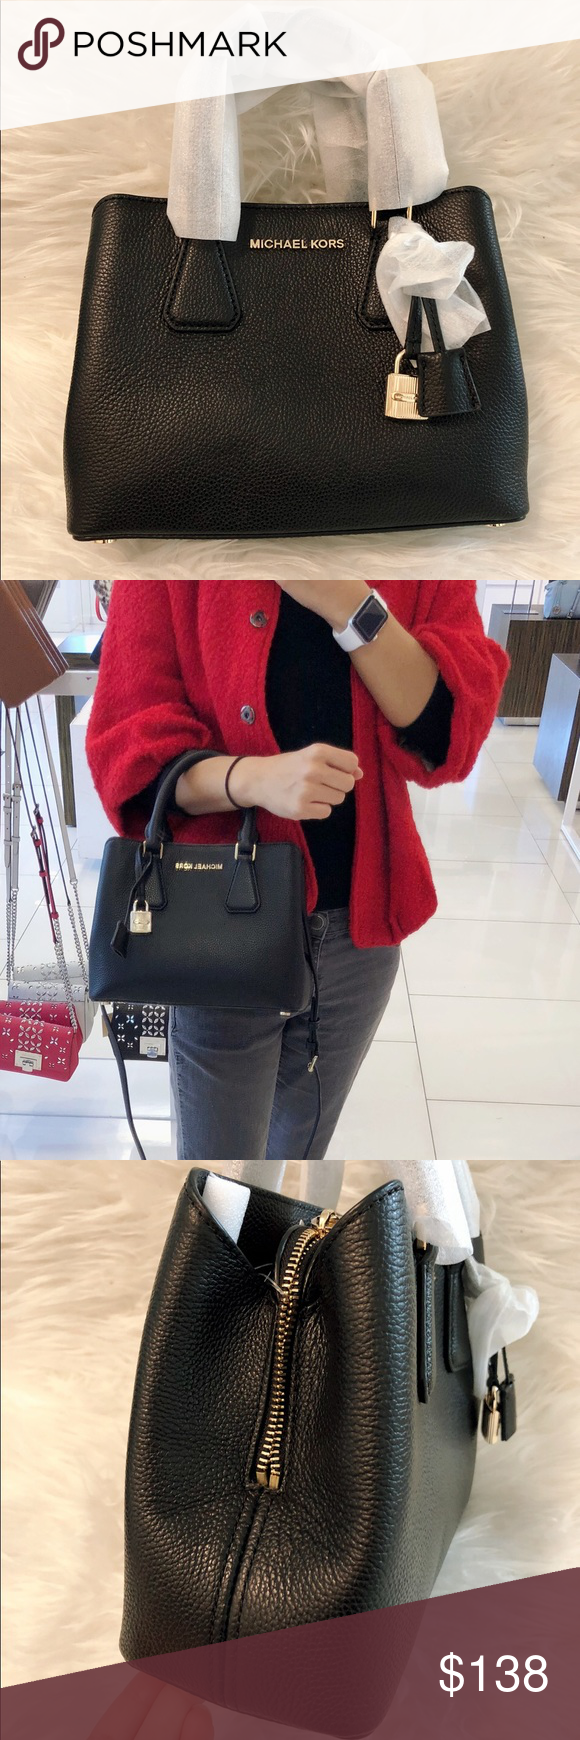 8f356405f957 NWT 👜MICHAEL KORS Small Camille Leather Satchel ⭐ :: Brand New with tags